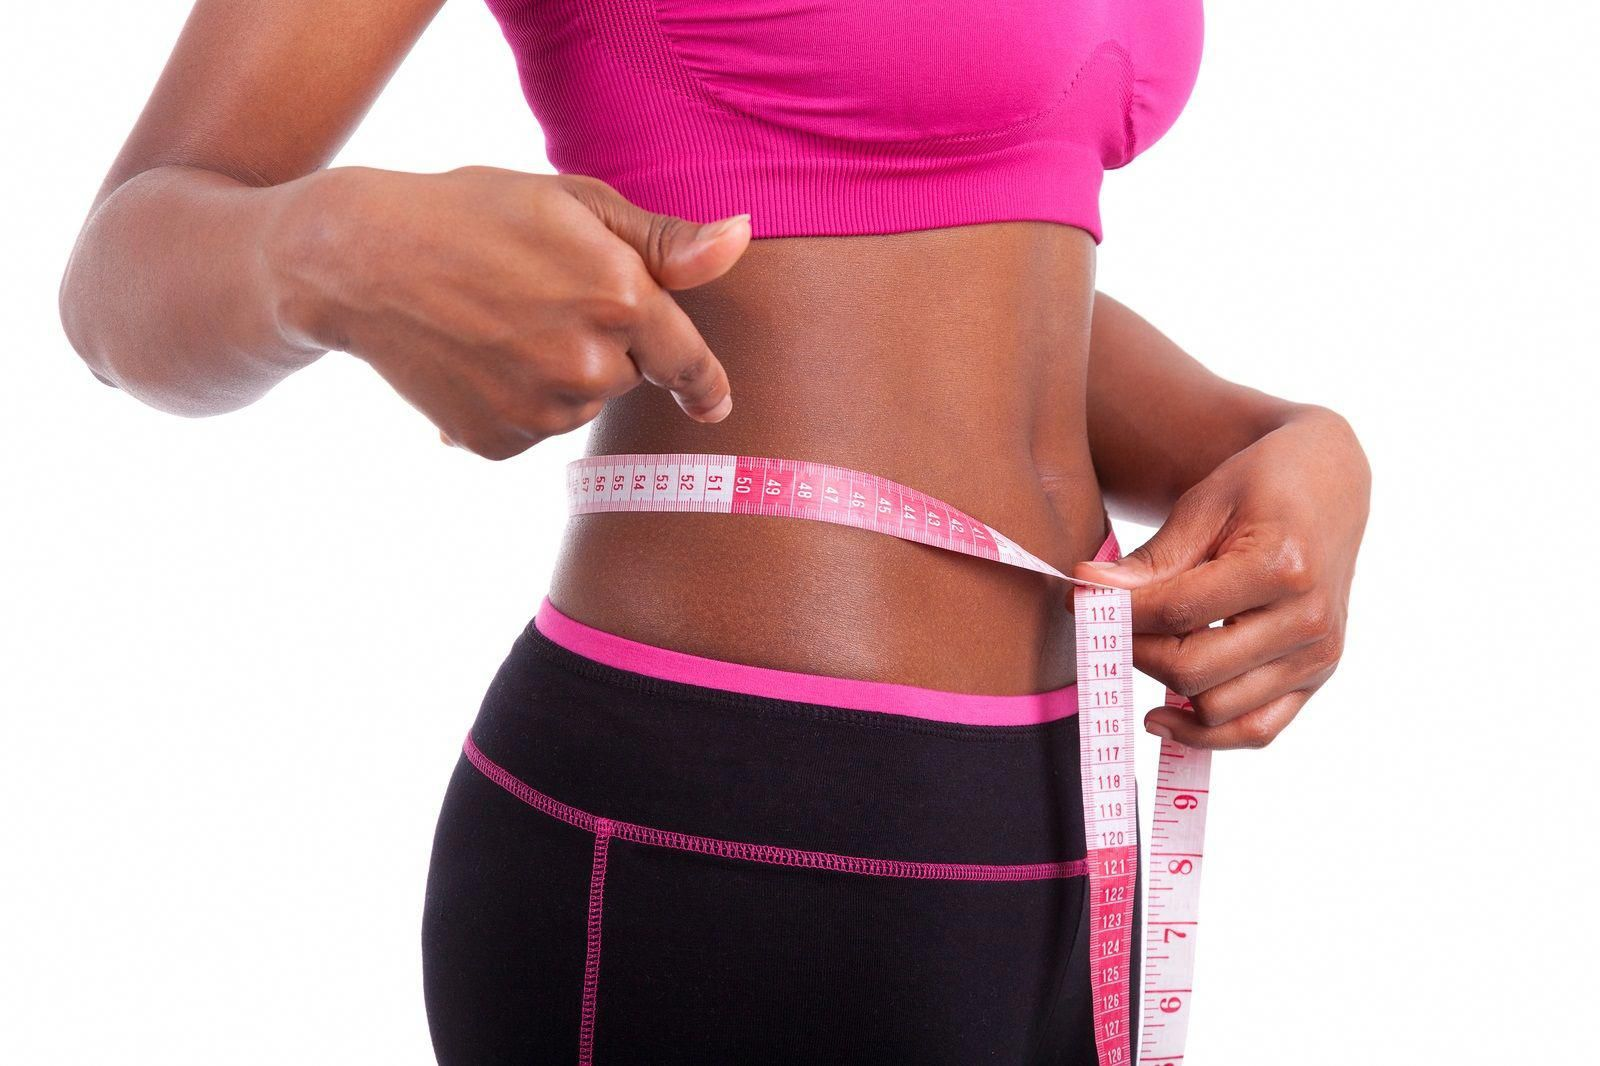 Pin on Lose 50 Pounds